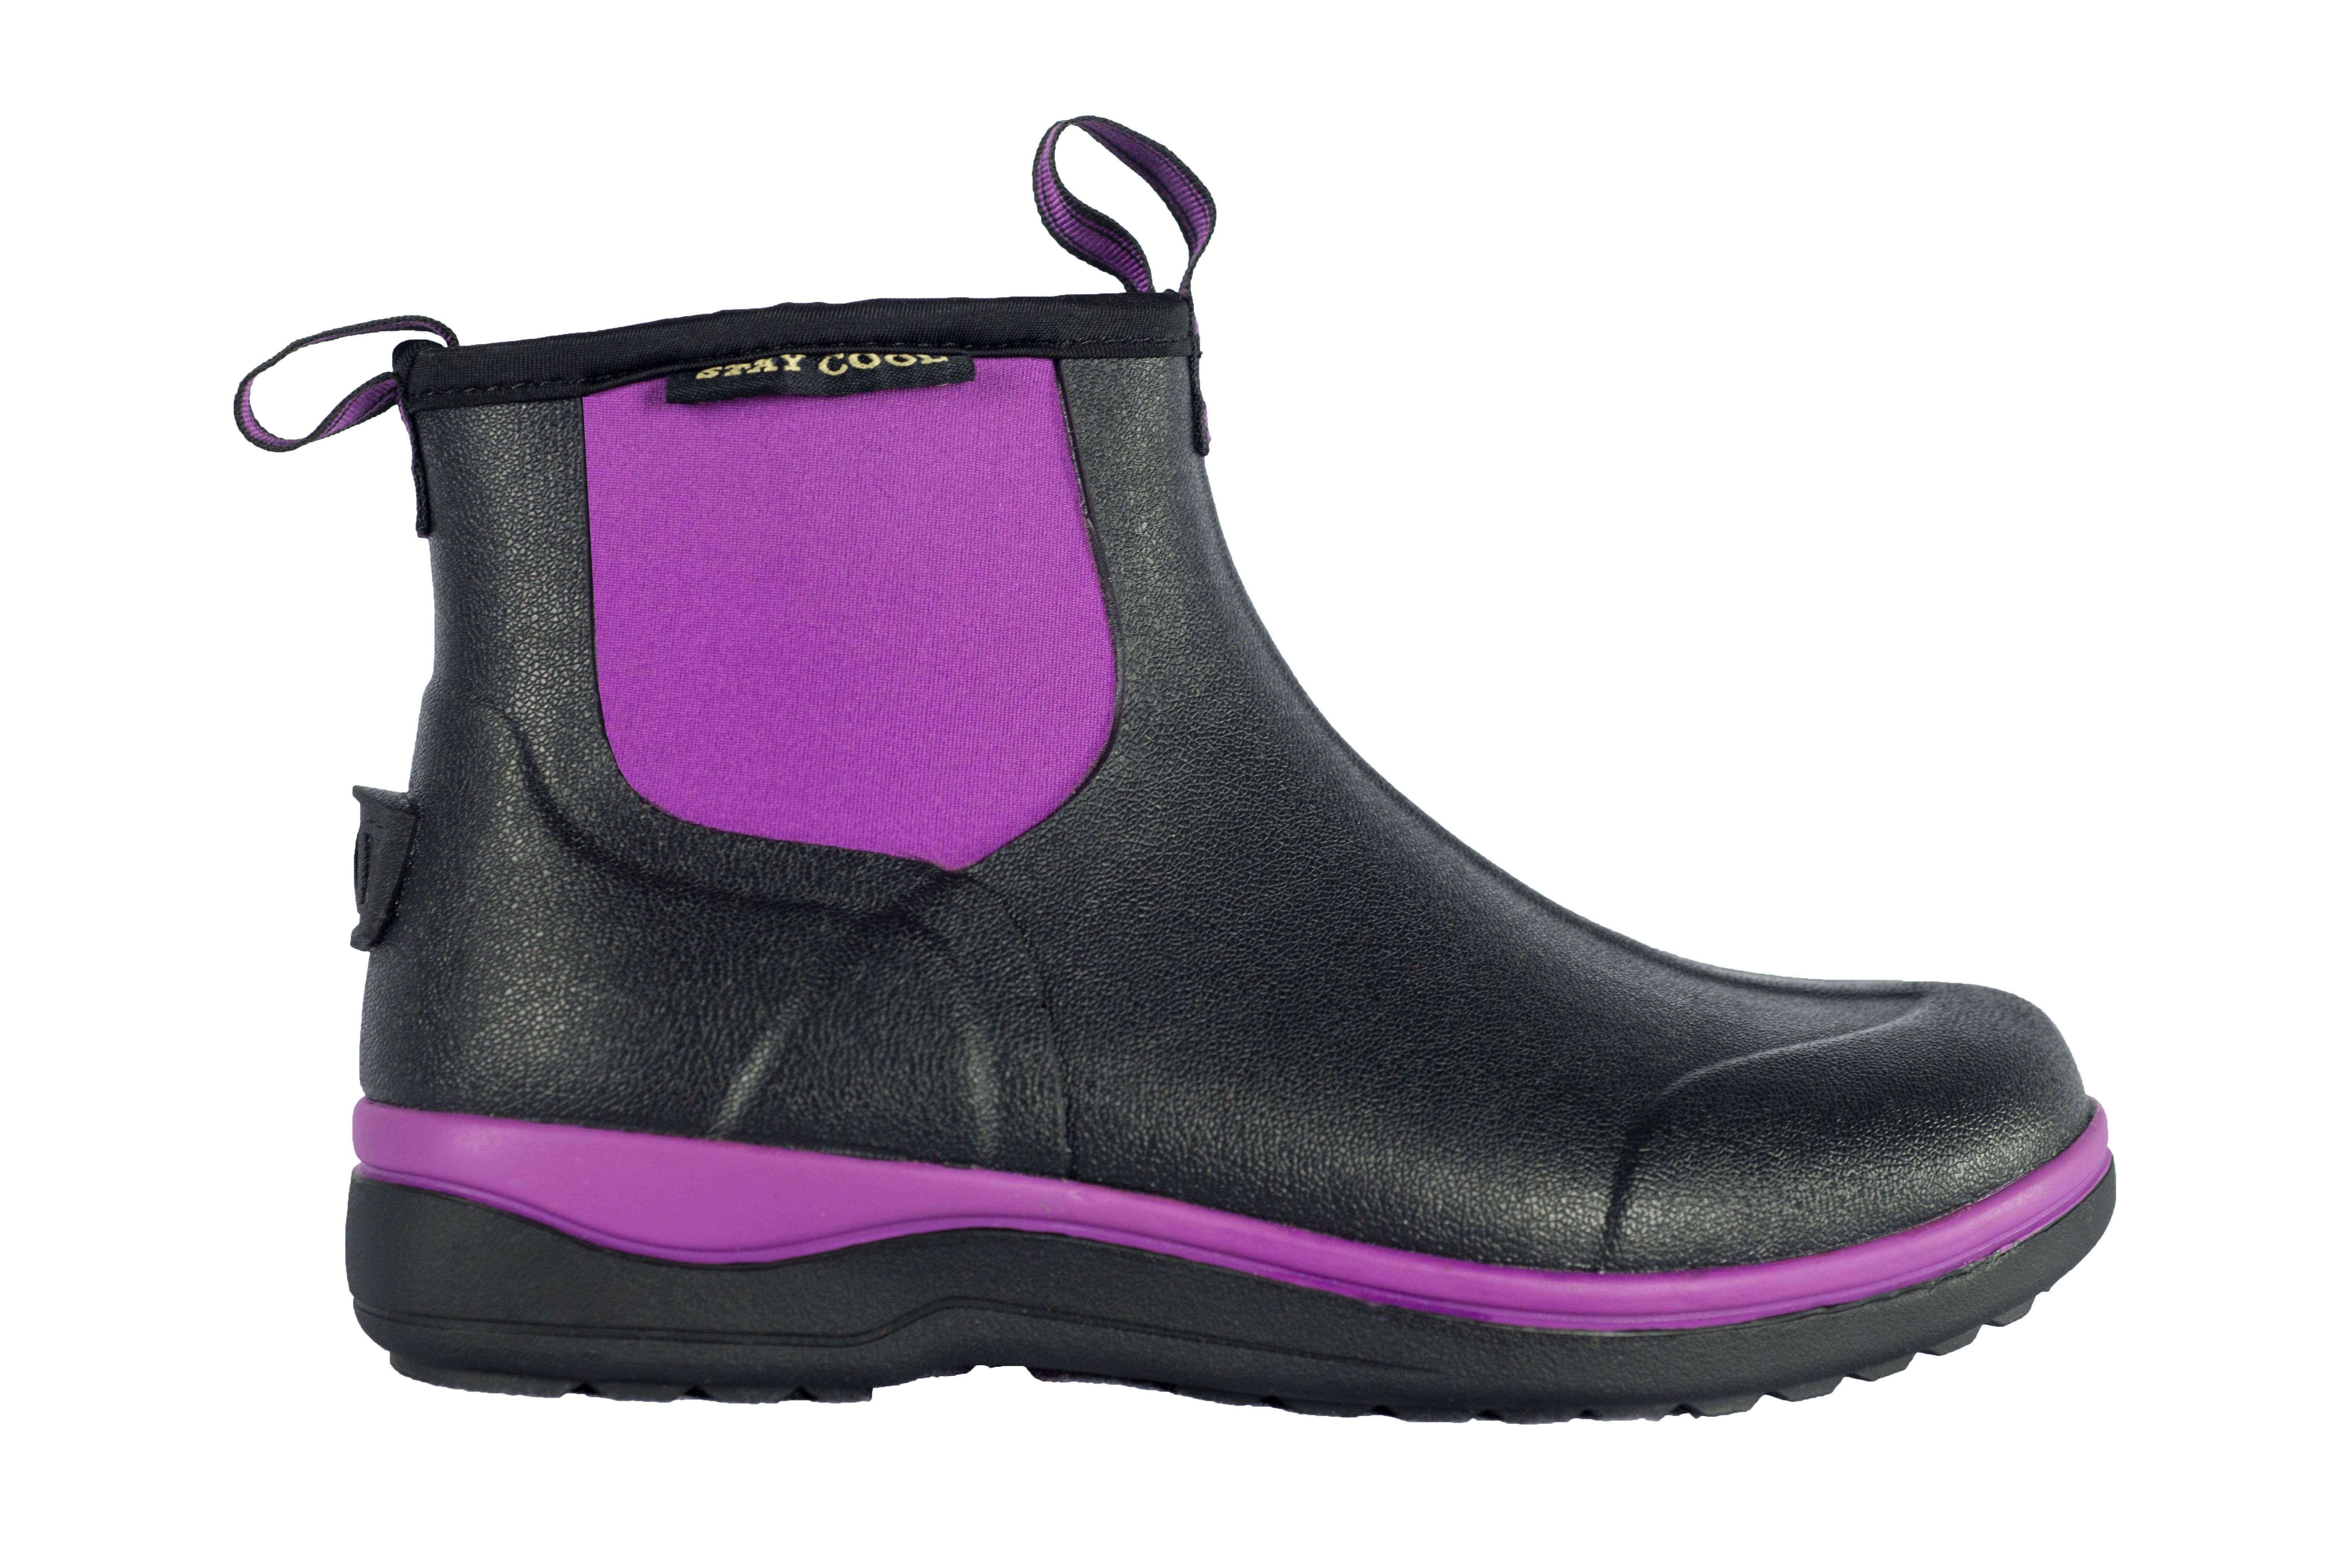 Noble Outfitters Muds Stay Cool Boot- Ladies, 6''